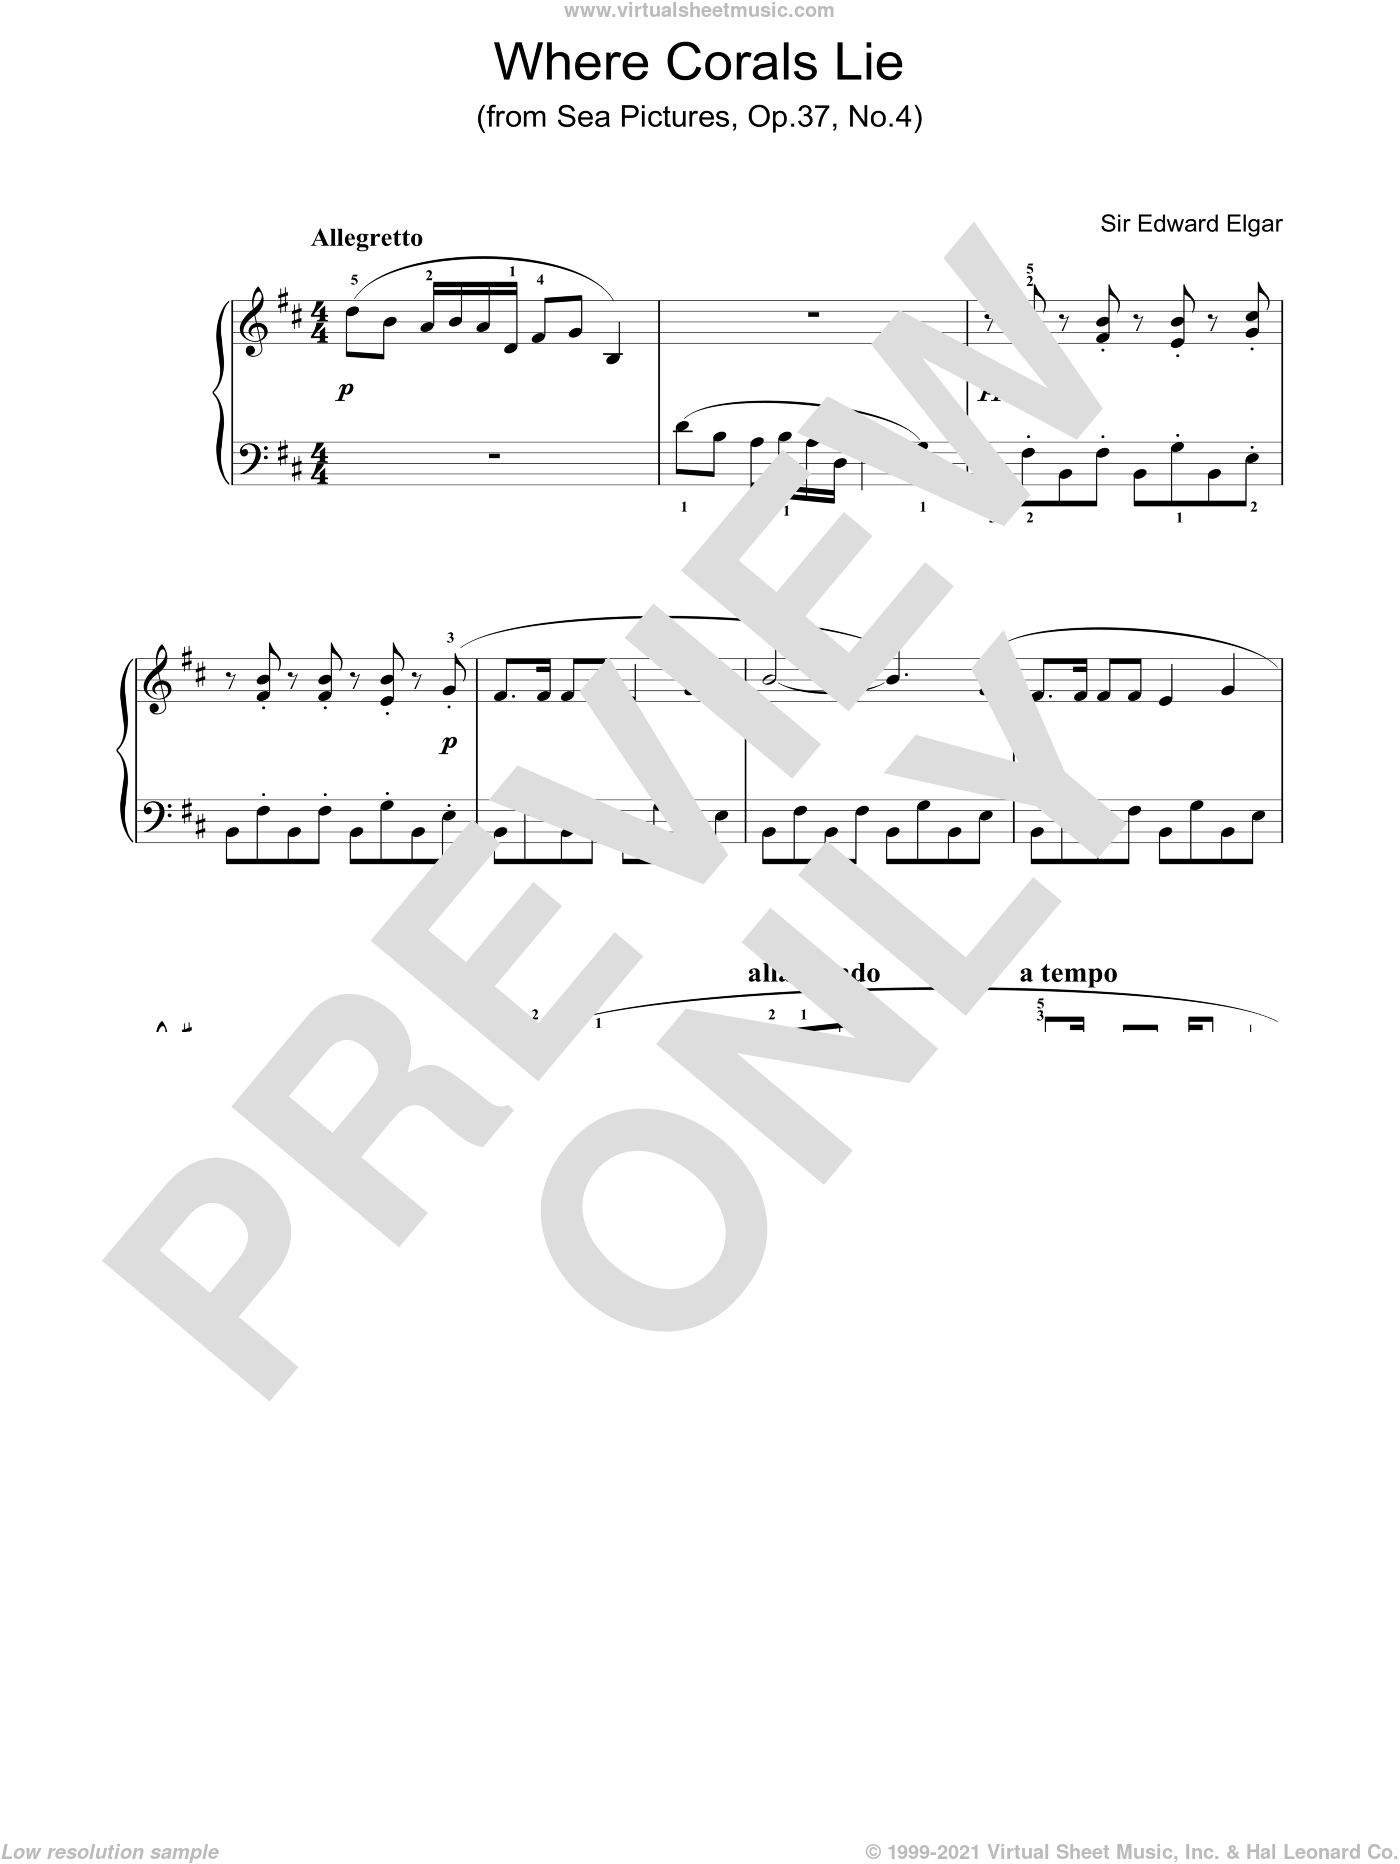 Where Corals Lie (from Sea Pictures, Op.37, No.4) sheet music for piano solo by Edward Elgar. Score Image Preview.